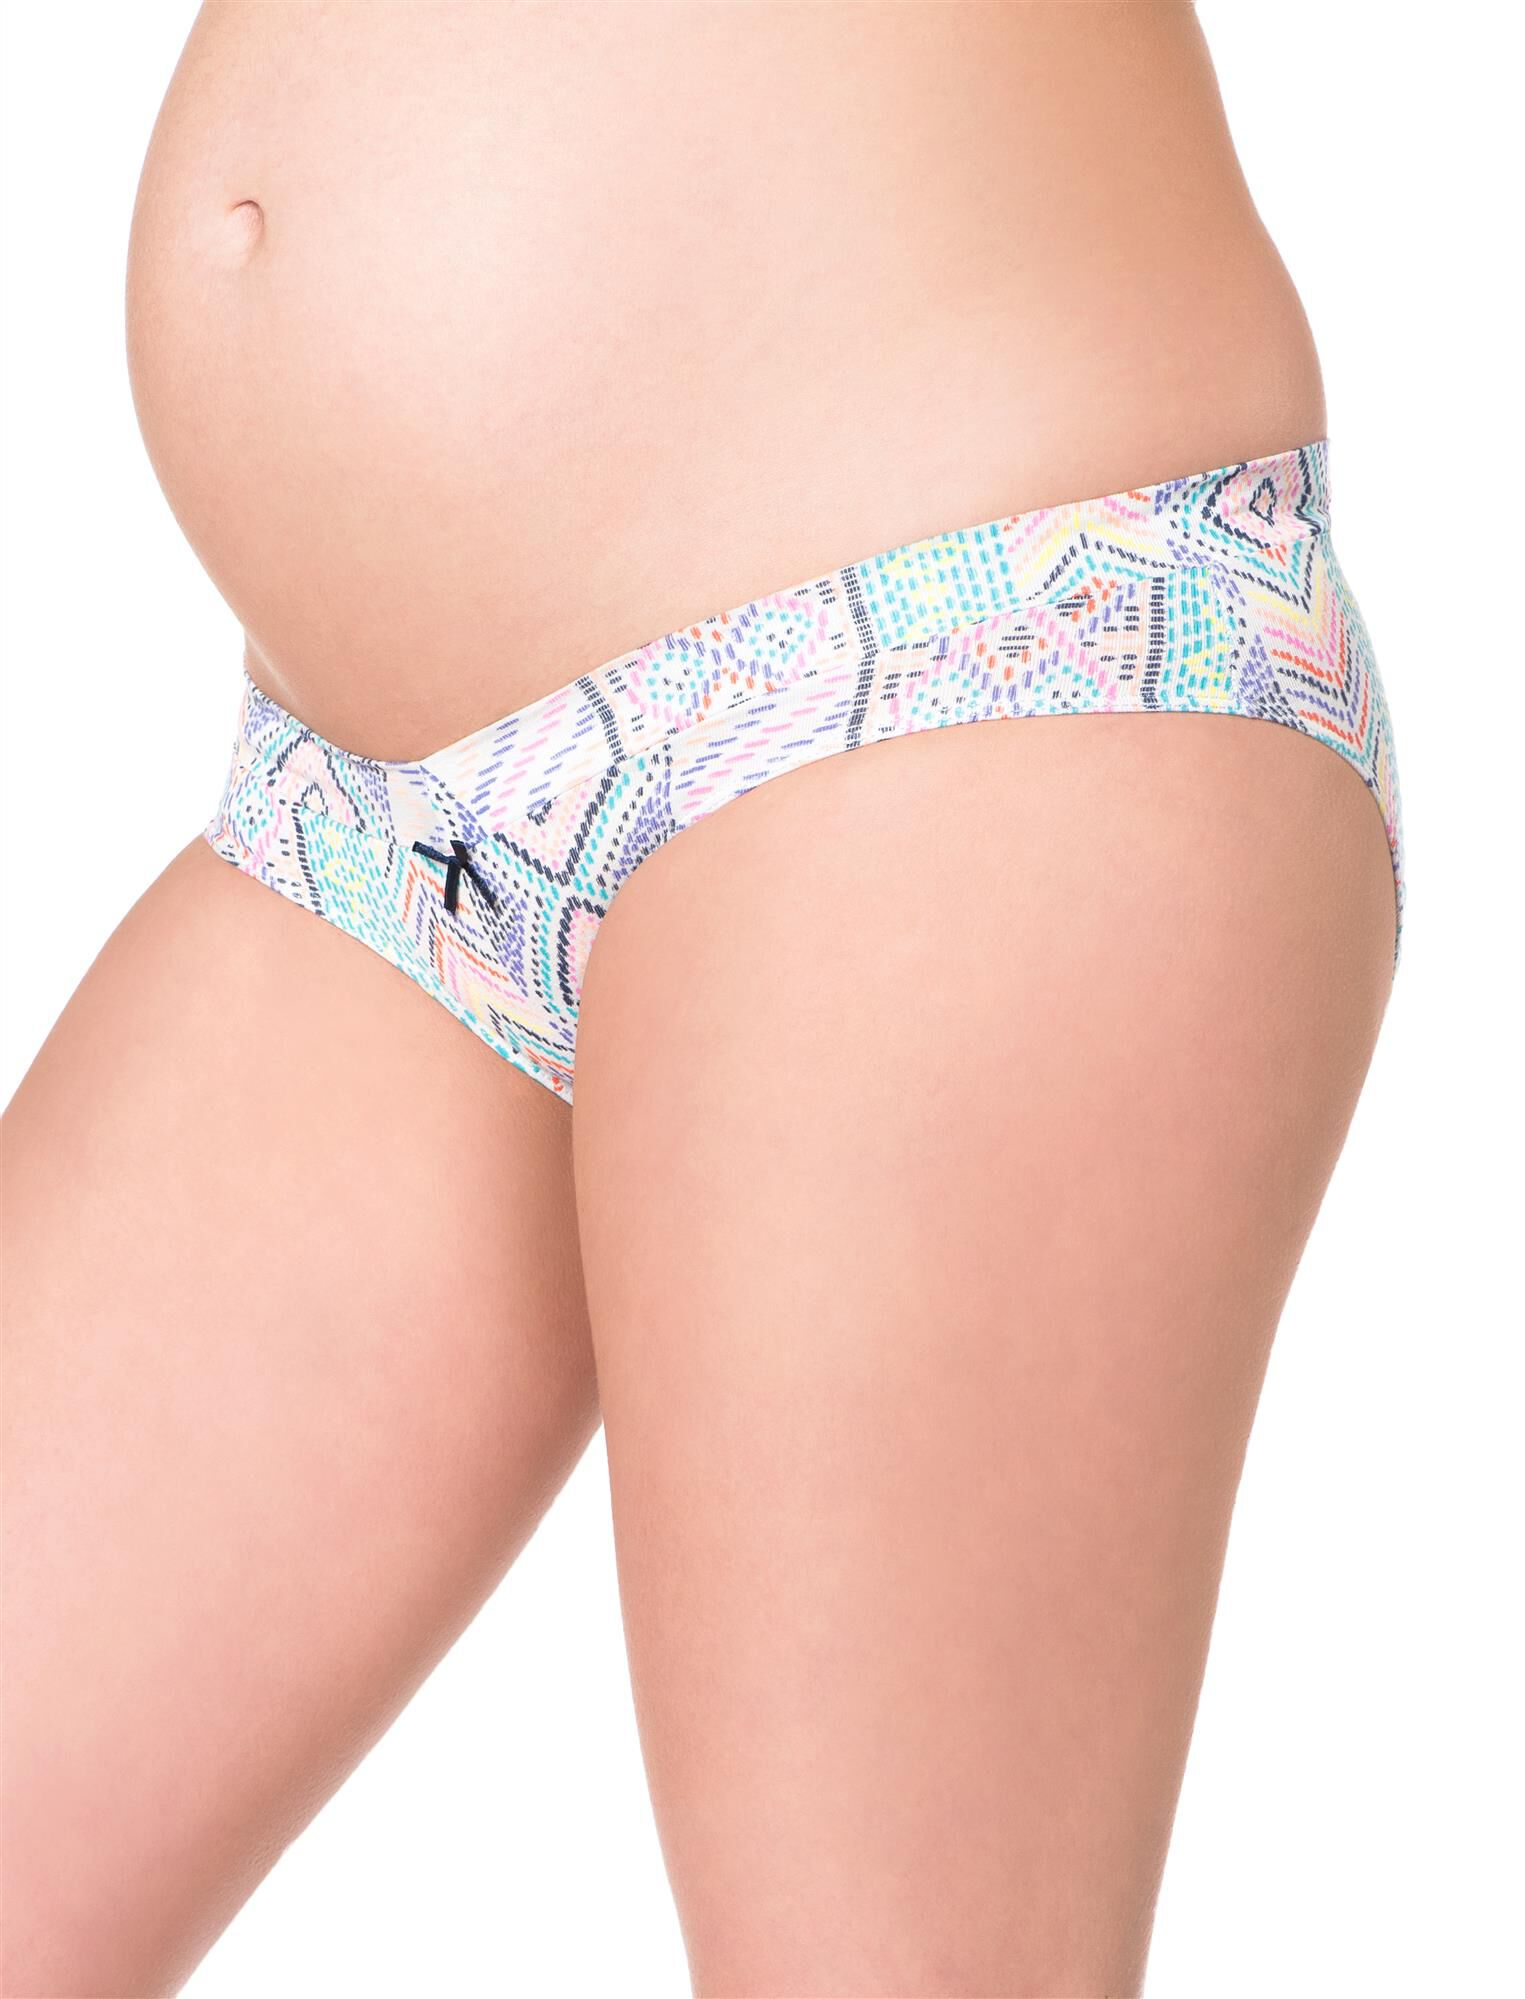 Maternity Hipster Panties (3 Pack)- Multi/Stripe/Navy